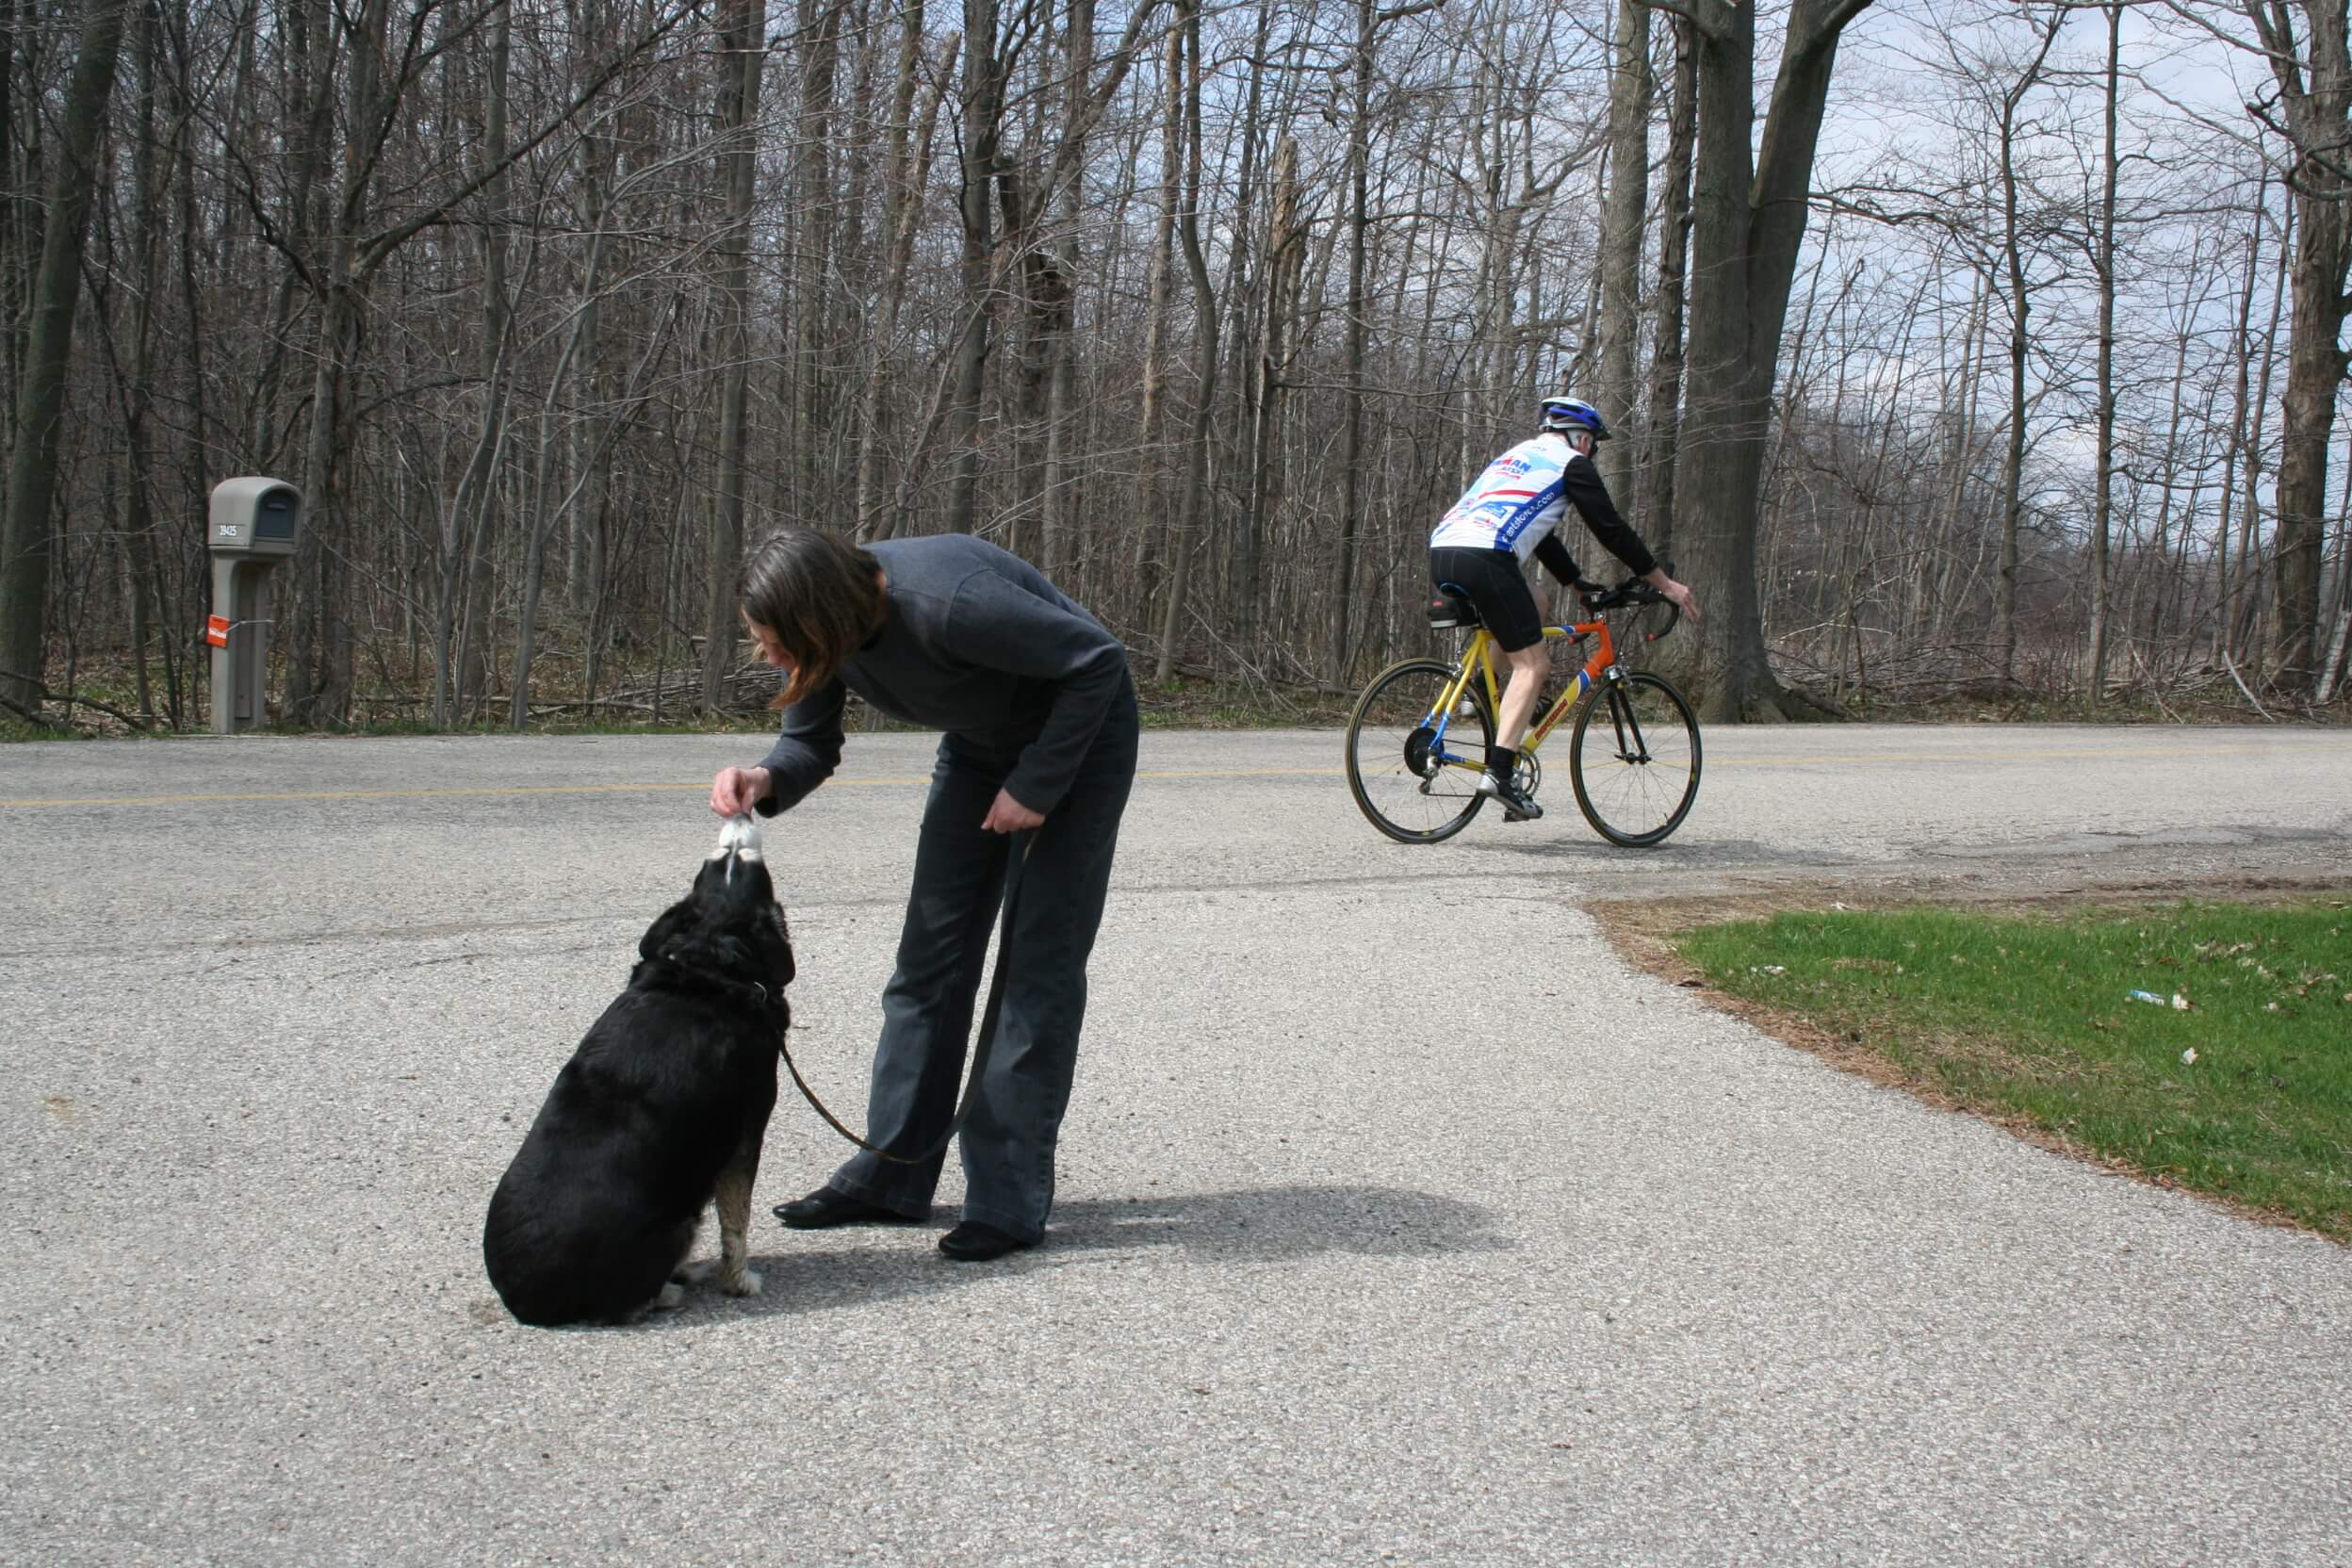 The settle command can be used to achieve a focused response when you dog is overly excited or anxious